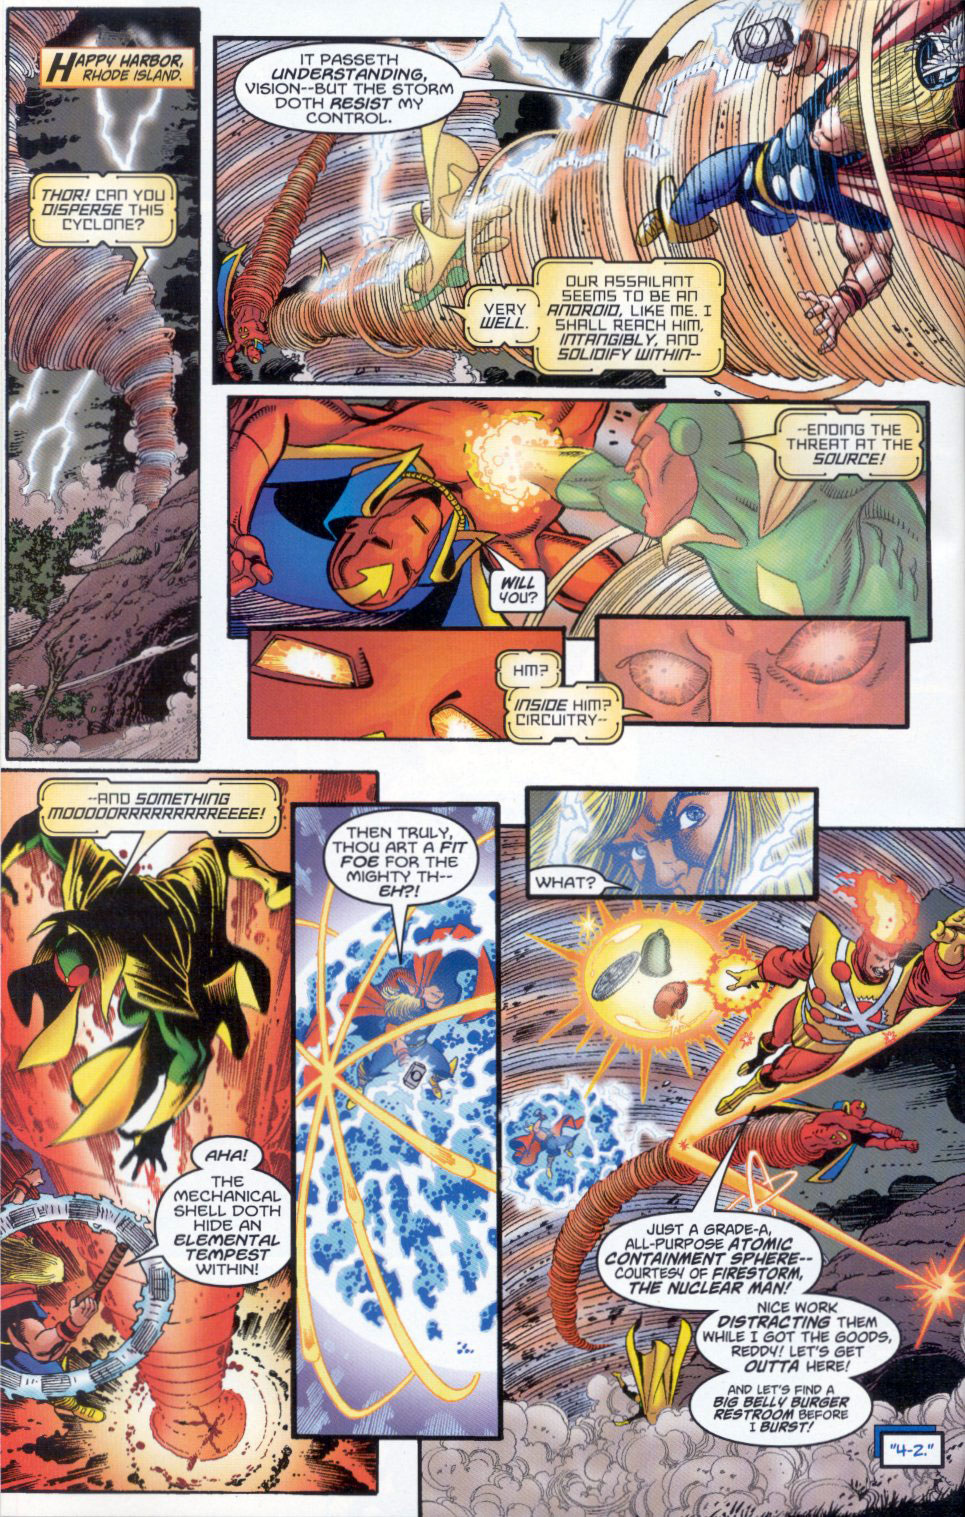 Firestorm vs Thor in Avengers/JLA #2